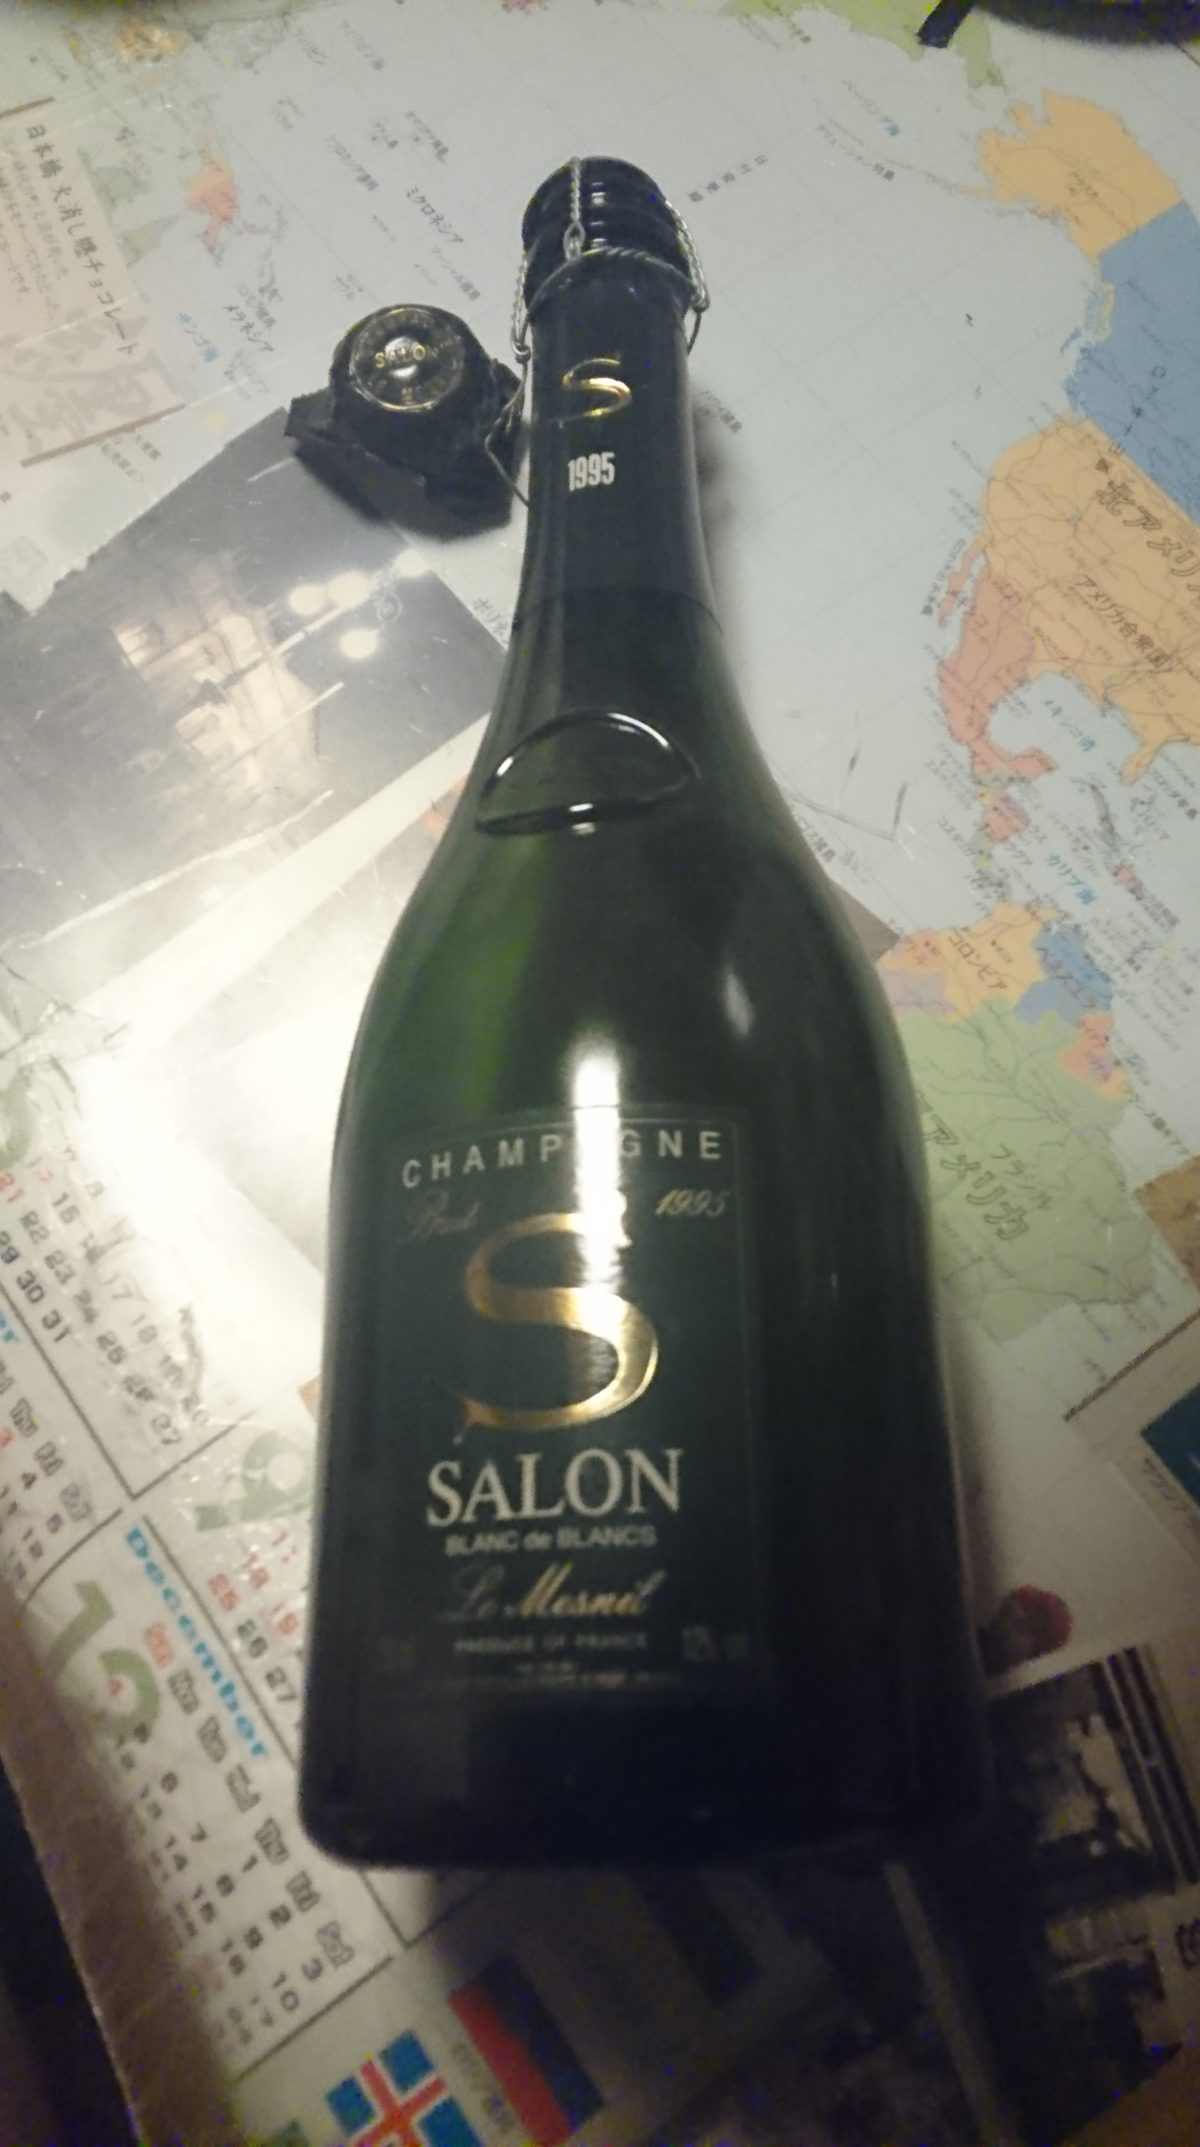 SALON 95 CHAMPAGNE